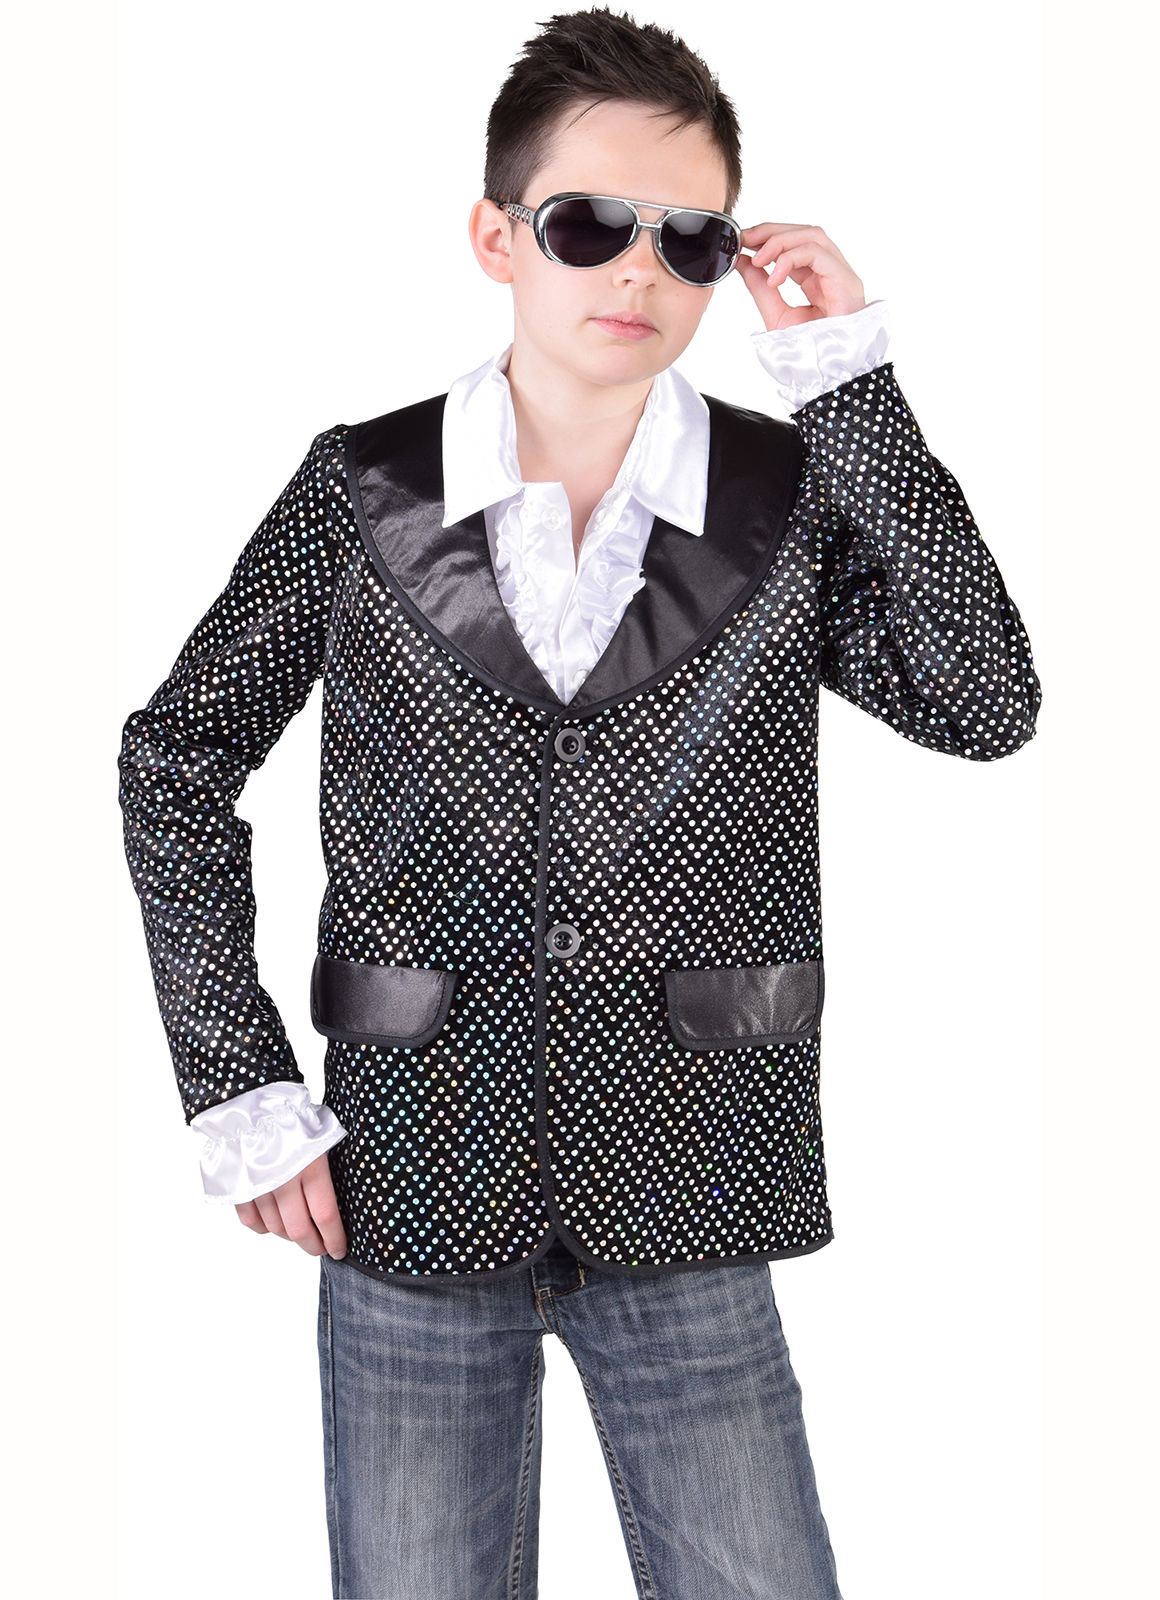 Kids SEQUINNED Jackets - Cabaret / Showman image 3